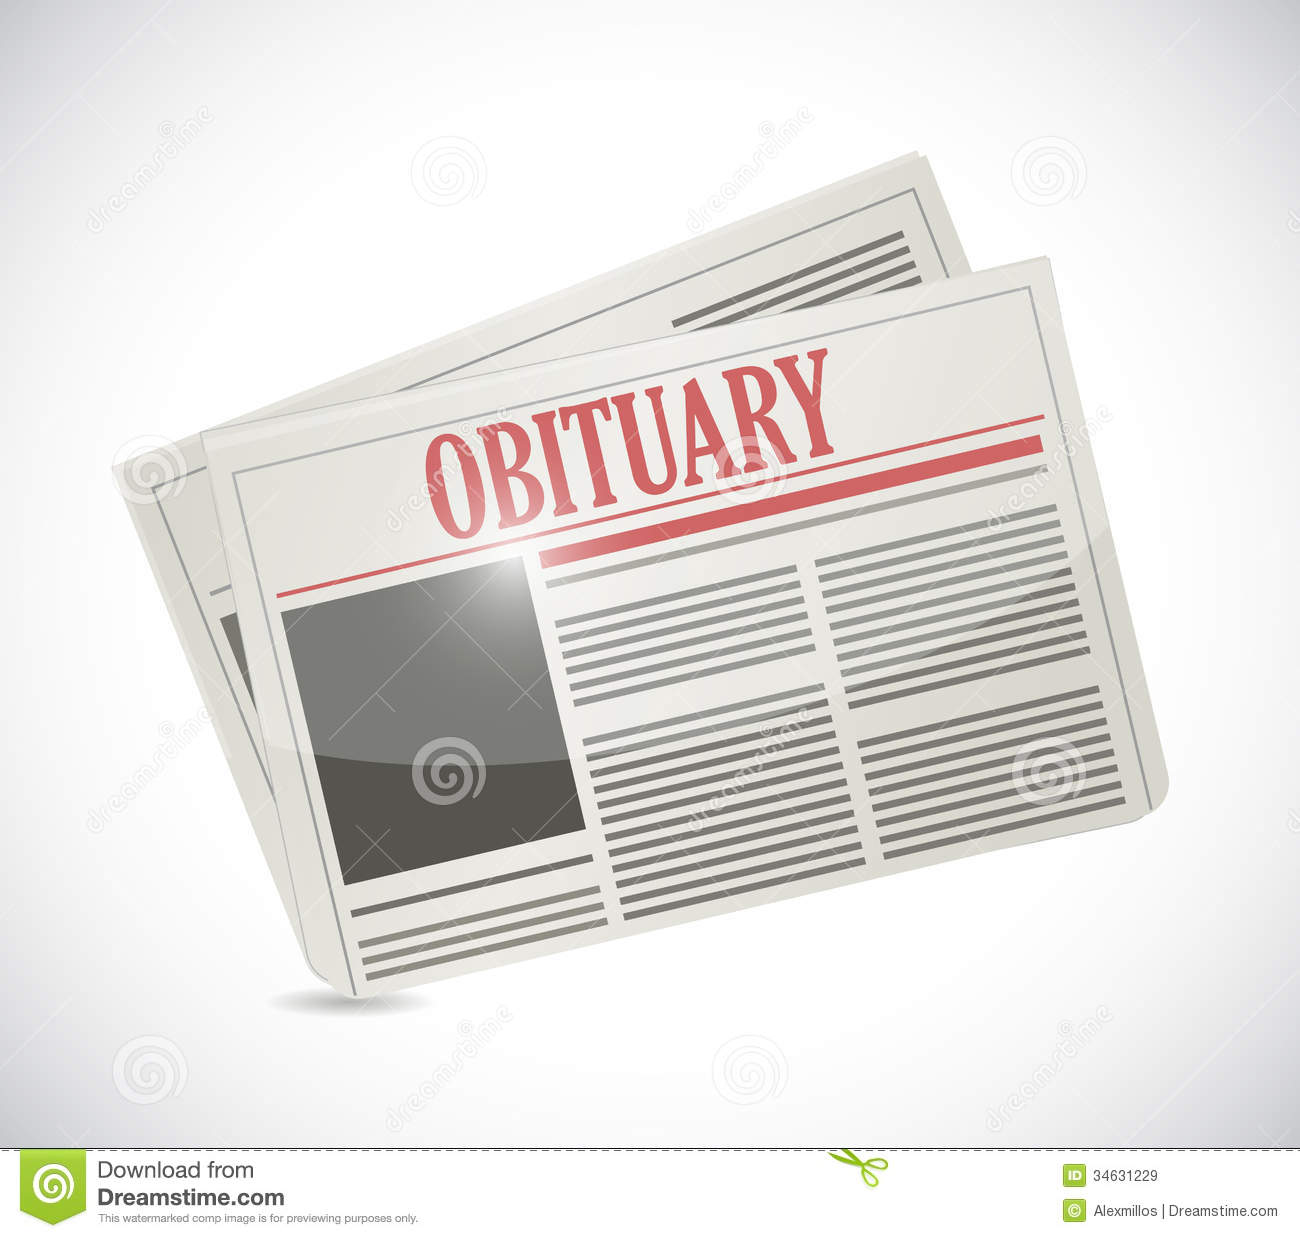 Obituary newspaper section illustration design royalty for News section design